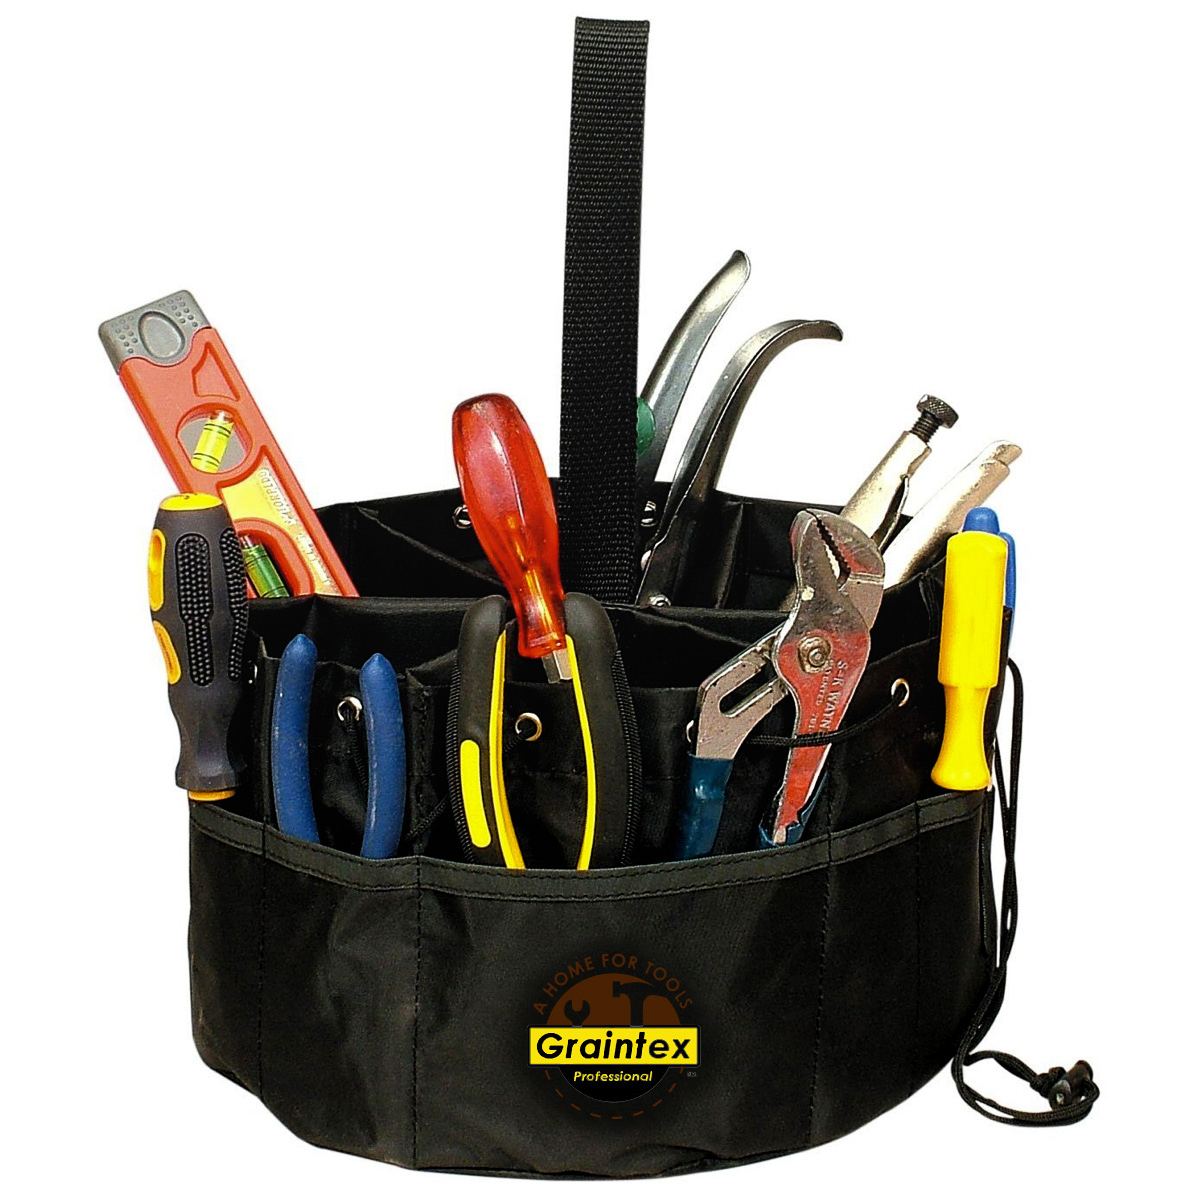 Graintex Grab Bag Professional Tool Holder Carry Pouch Drawstring Pockets PB1836 Tools Set